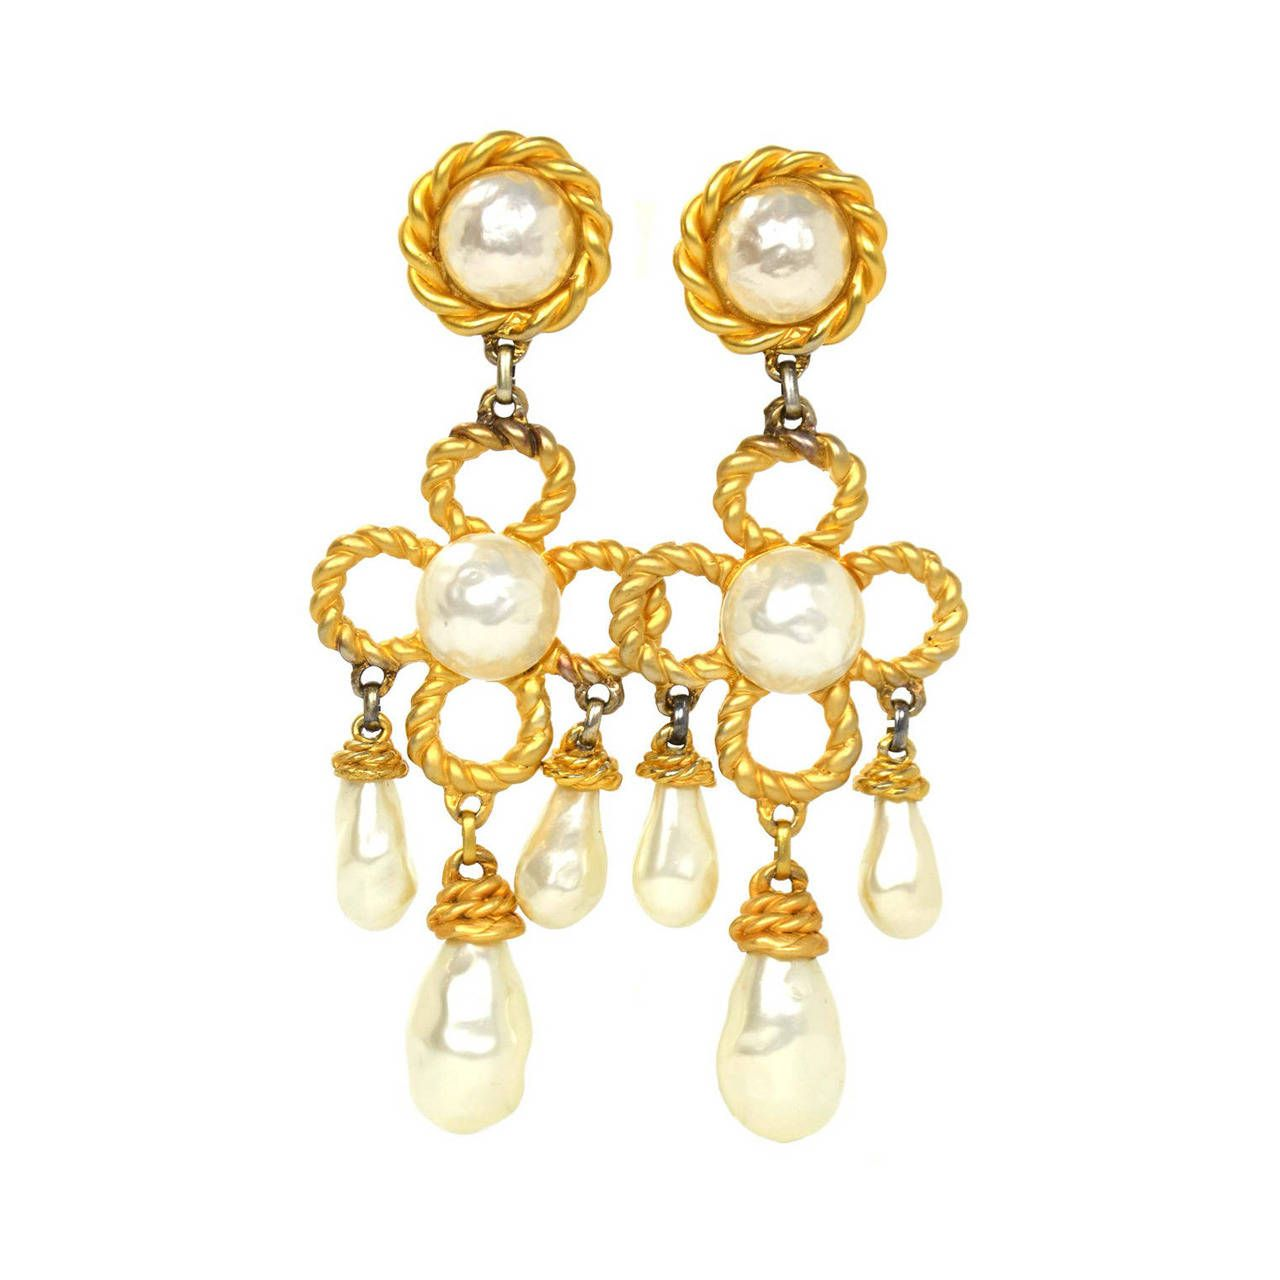 Chanel Vintage 1970s 1980s Large Pearl And Gold Chandelier Earrings